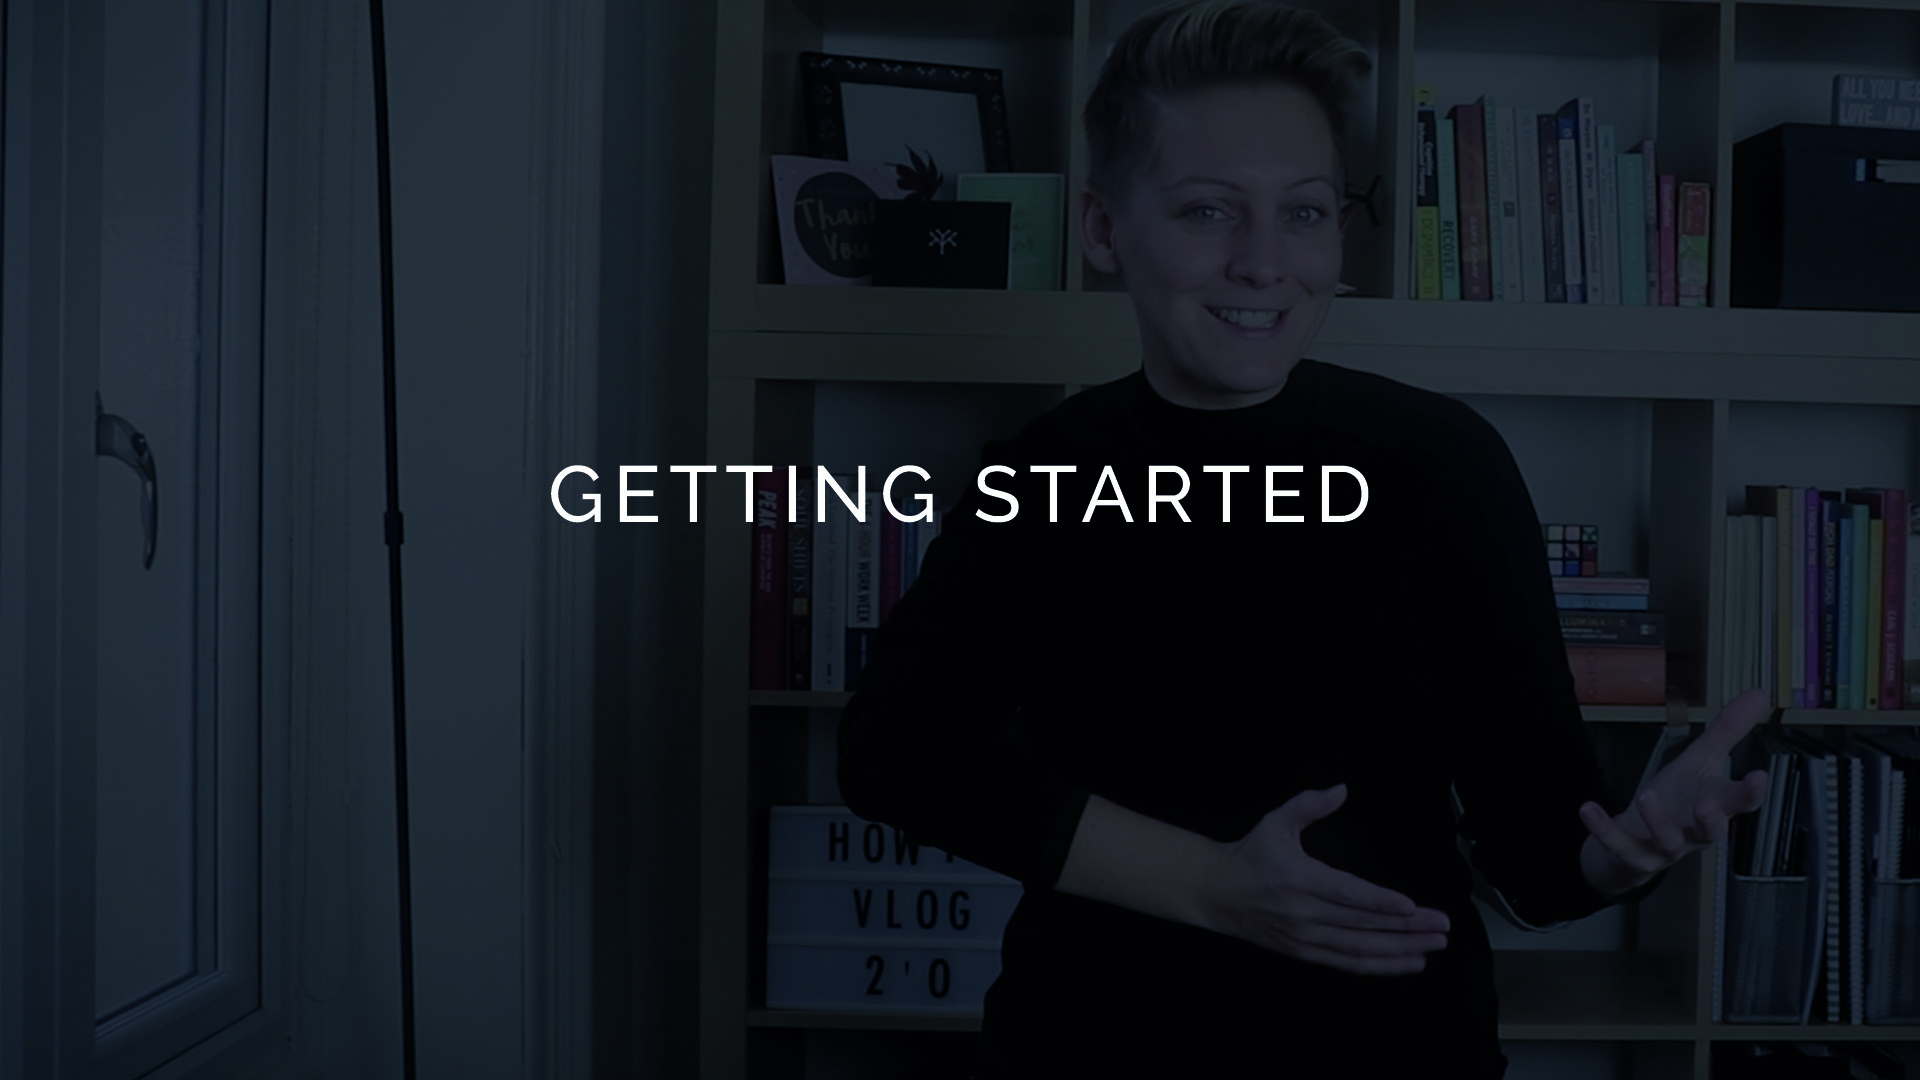 Getting started as a vlogger